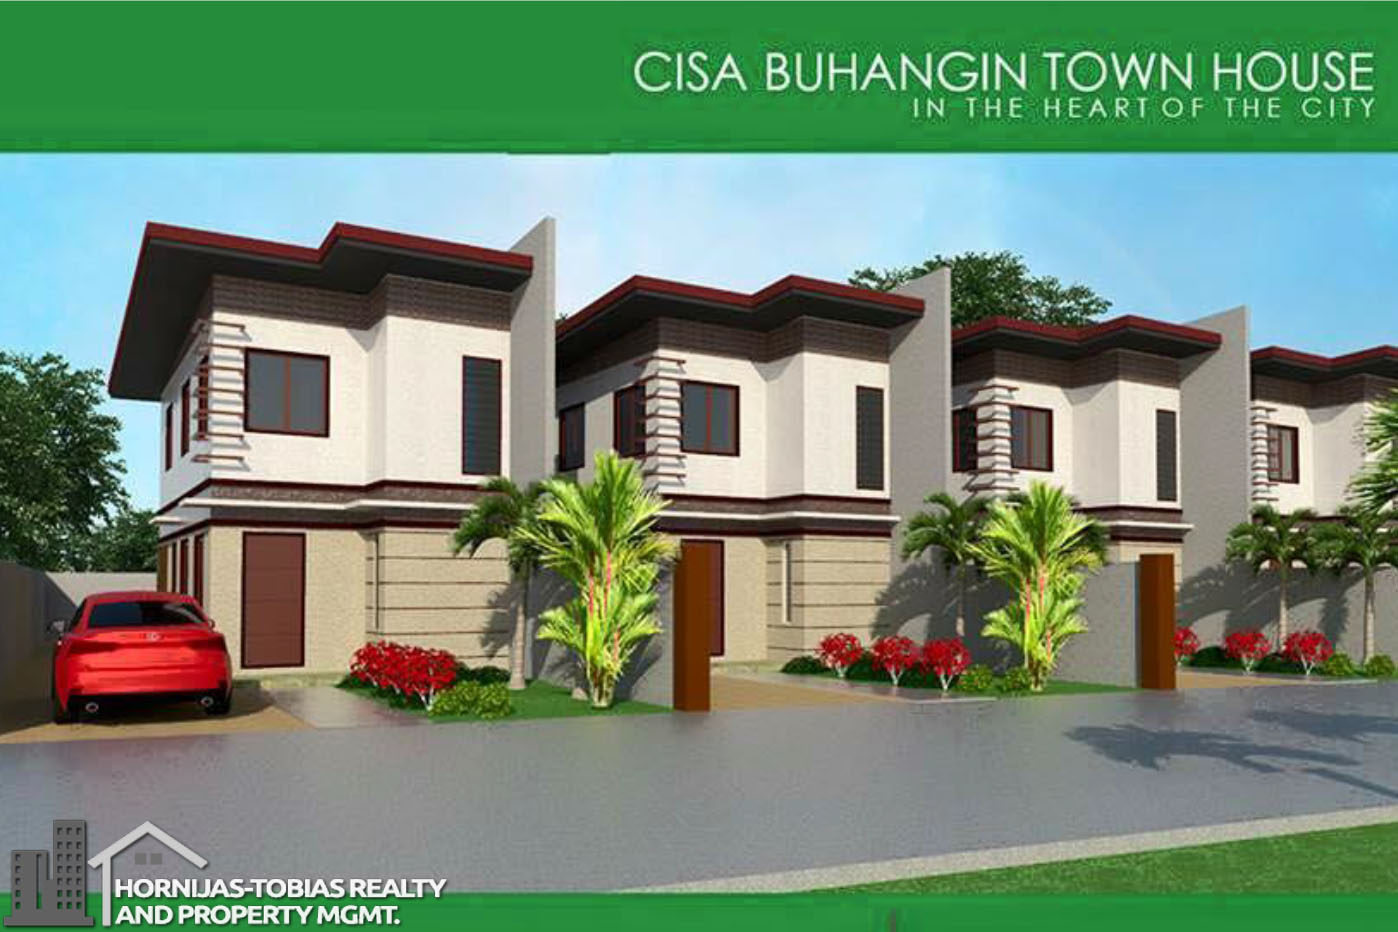 4 bedroom townhouse buhangin cisa model davao property for Four bedroom townhouse